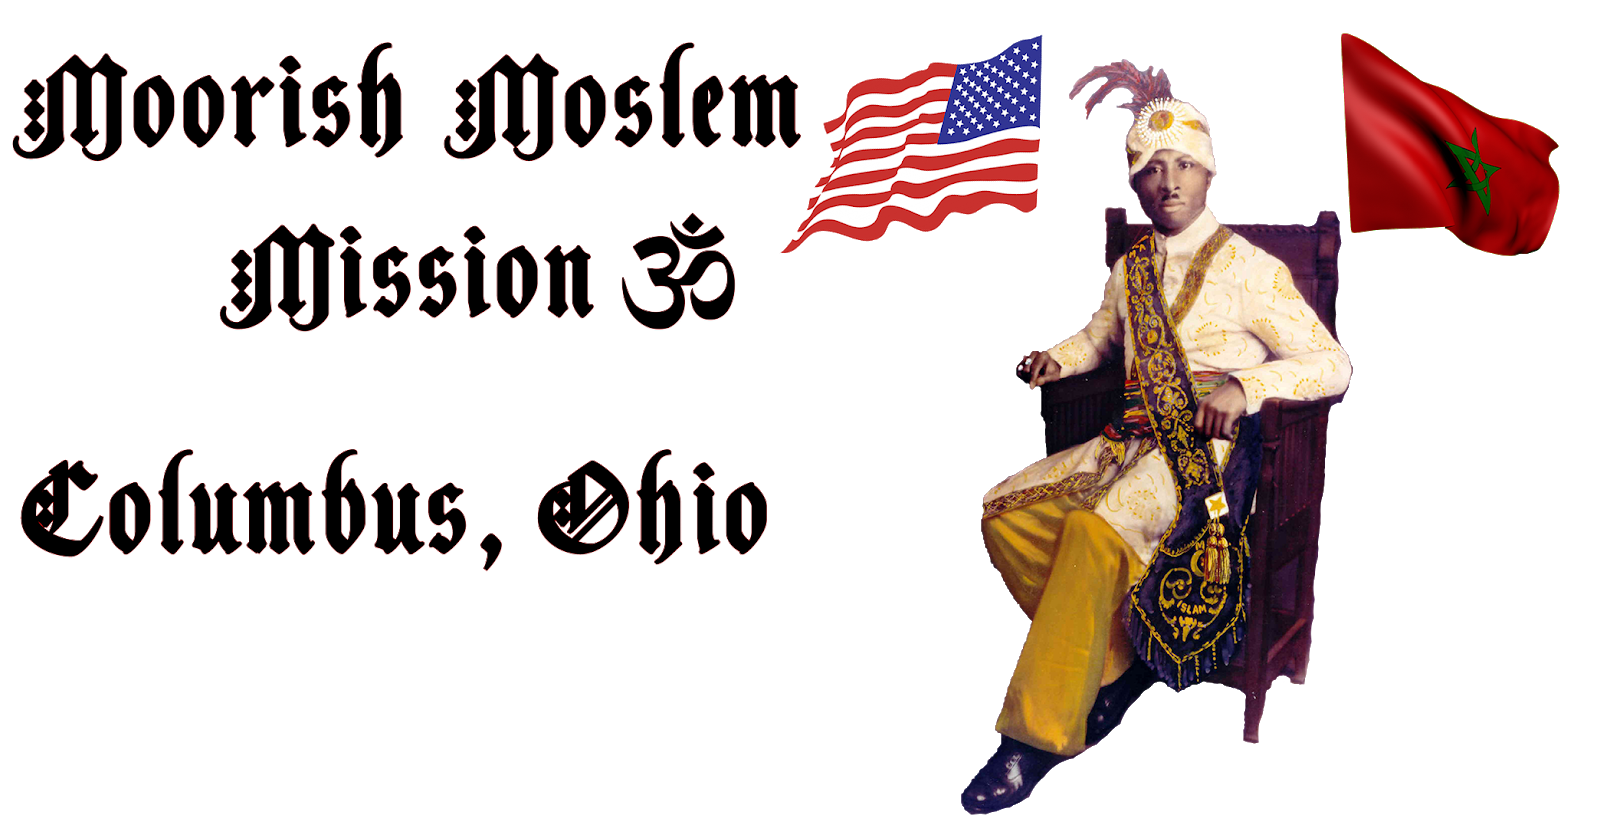 Moorish American Moslem Mission 30 for Columbus Ohio